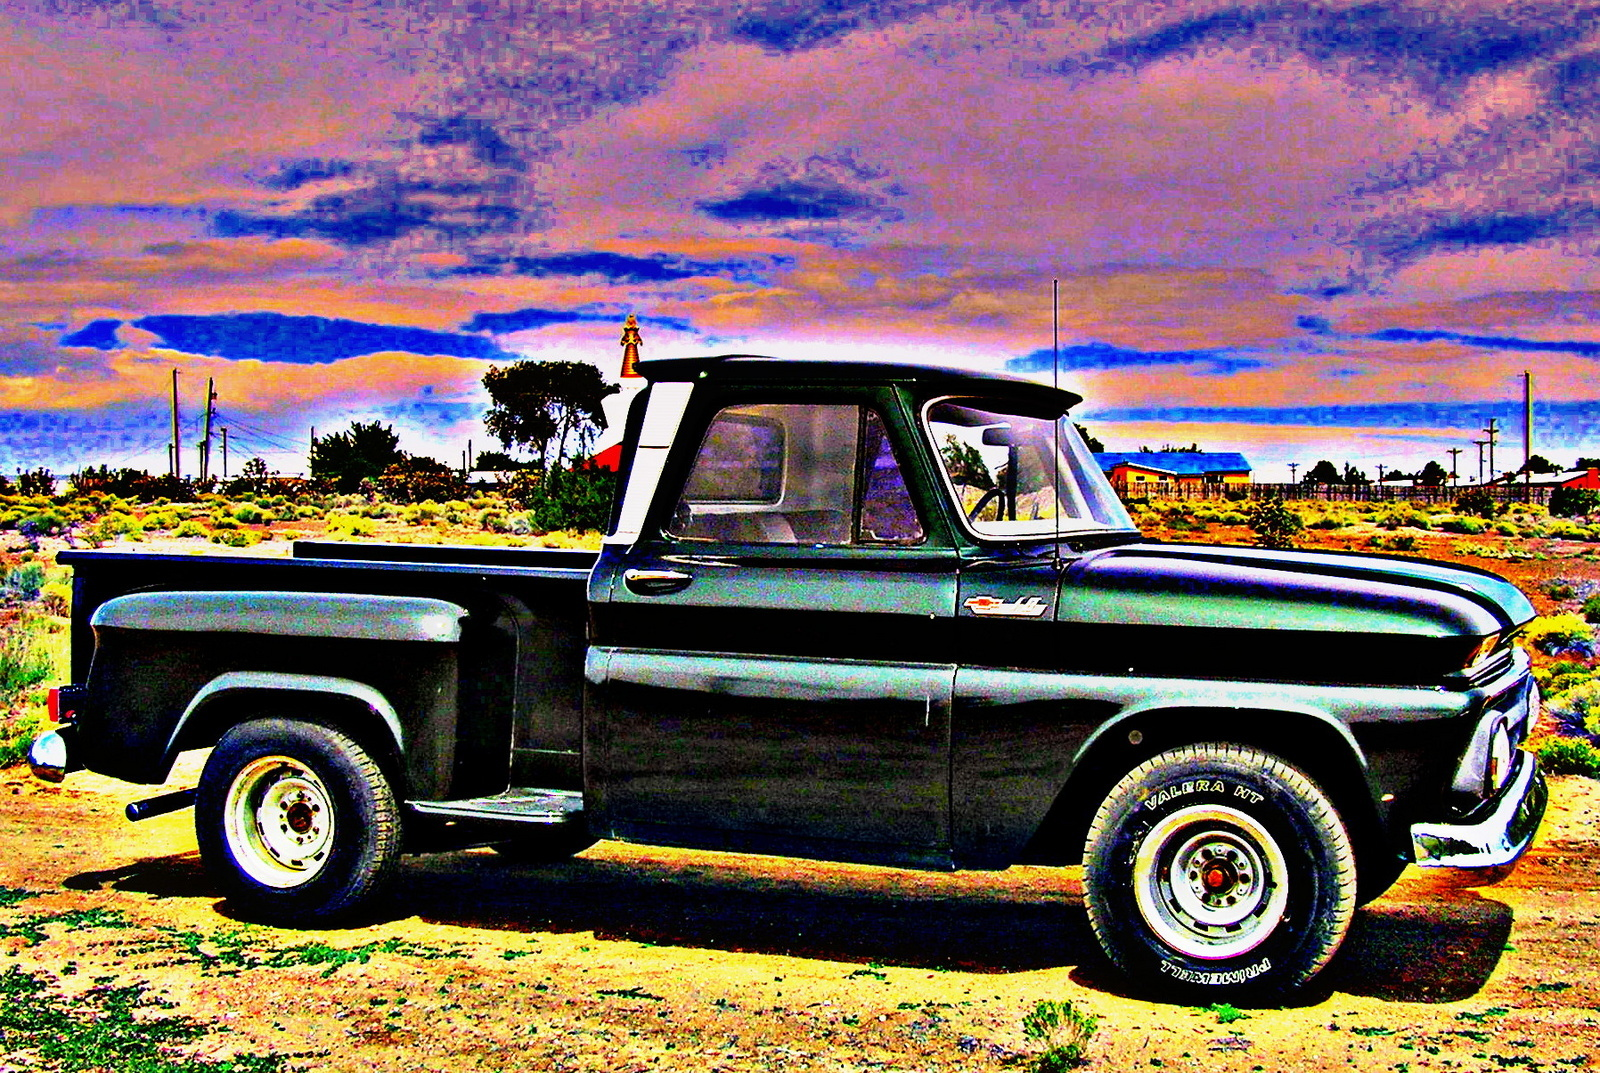 Truck 97 chevy truck wont start : Chevrolet Silverado 1500 Questions - I hve a 1997 chevy 1500 ...